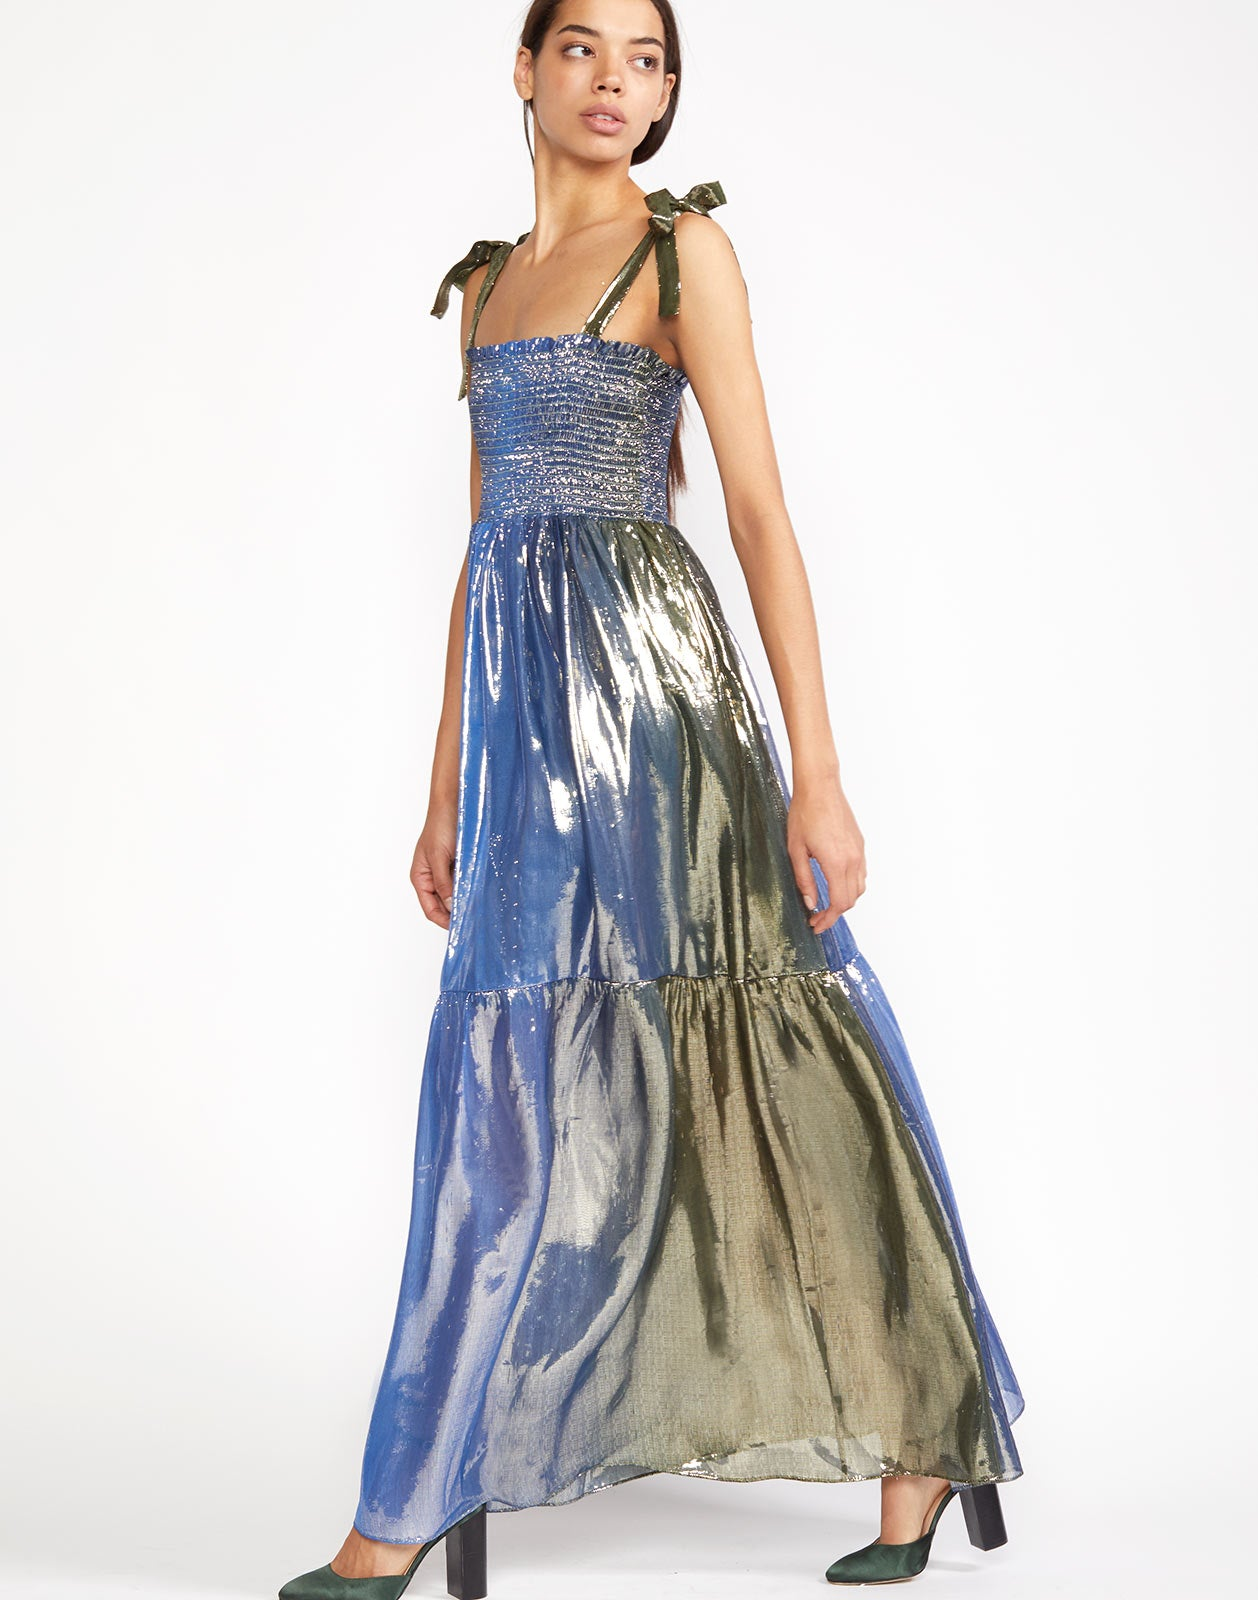 Full view of Jade Dress with metallic shimmer and maxi tiered length skirt.